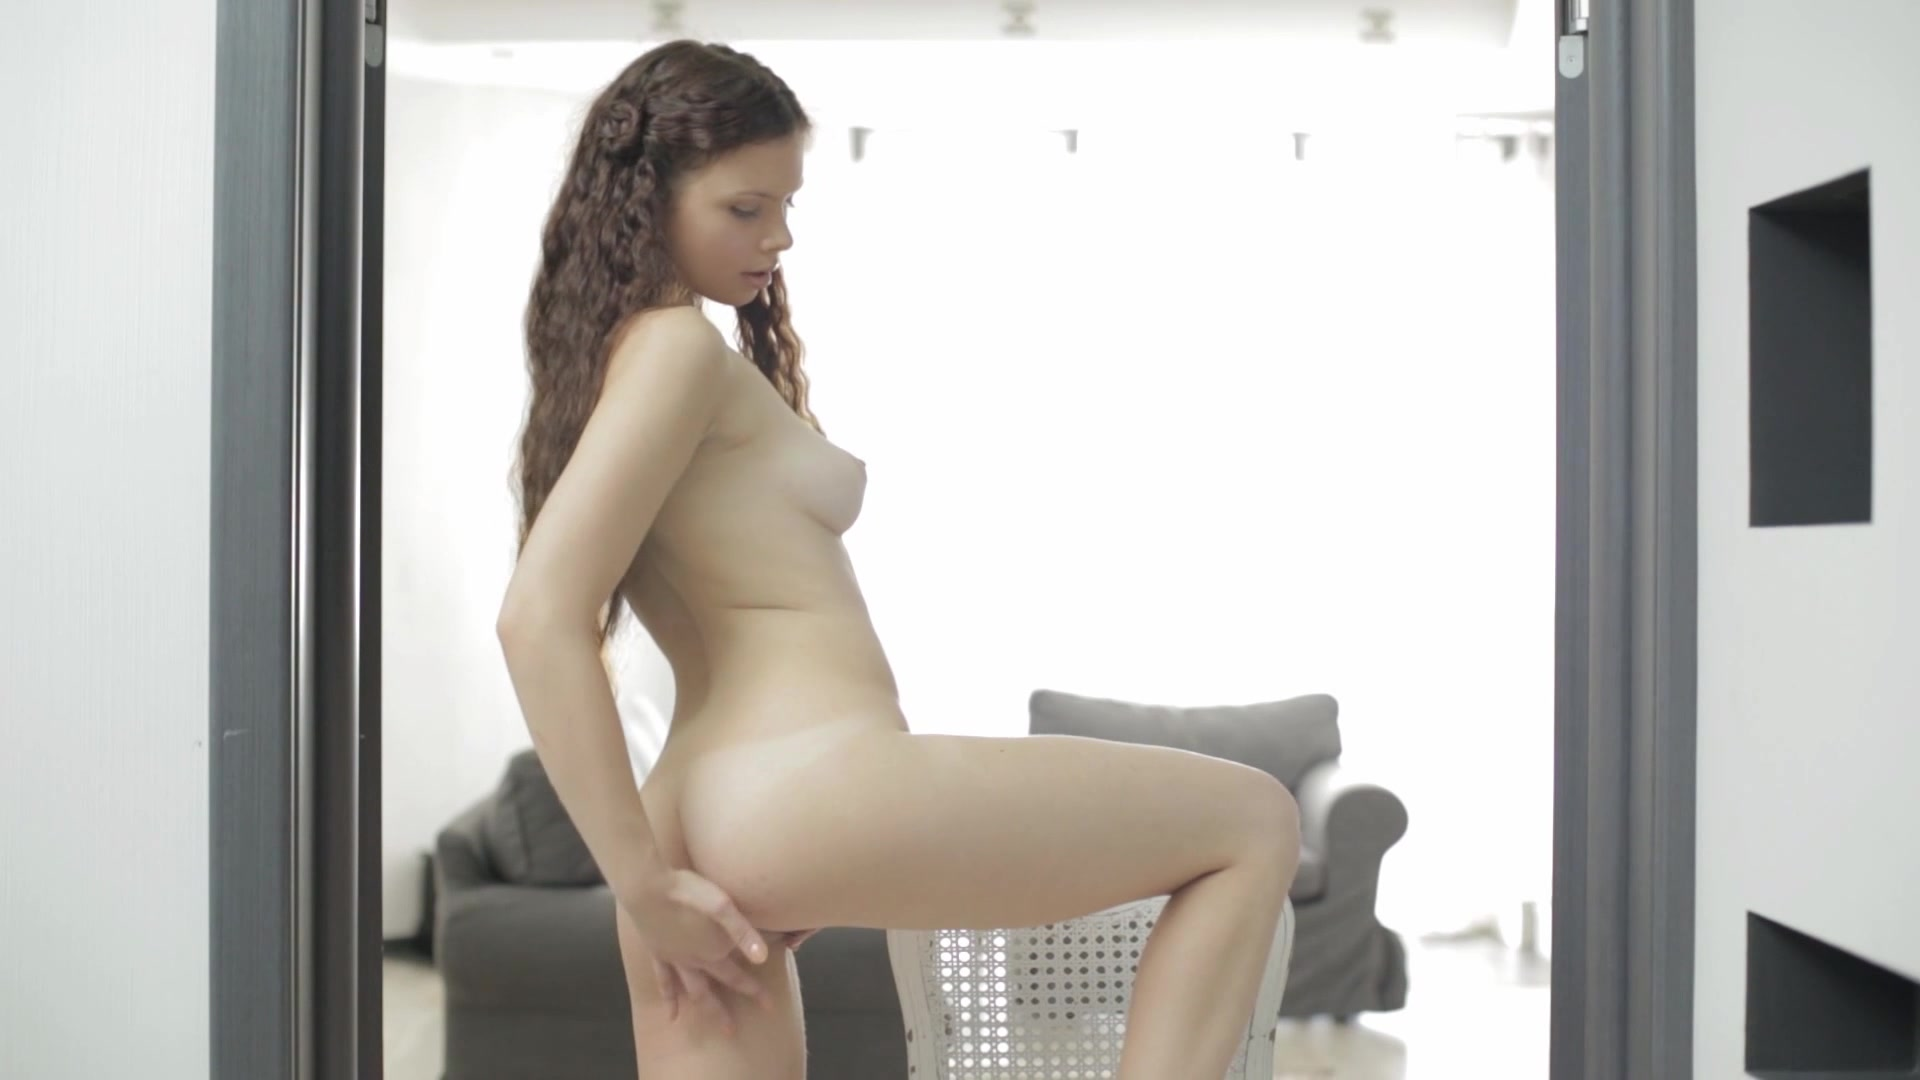 Teen home alone, college cutie nude